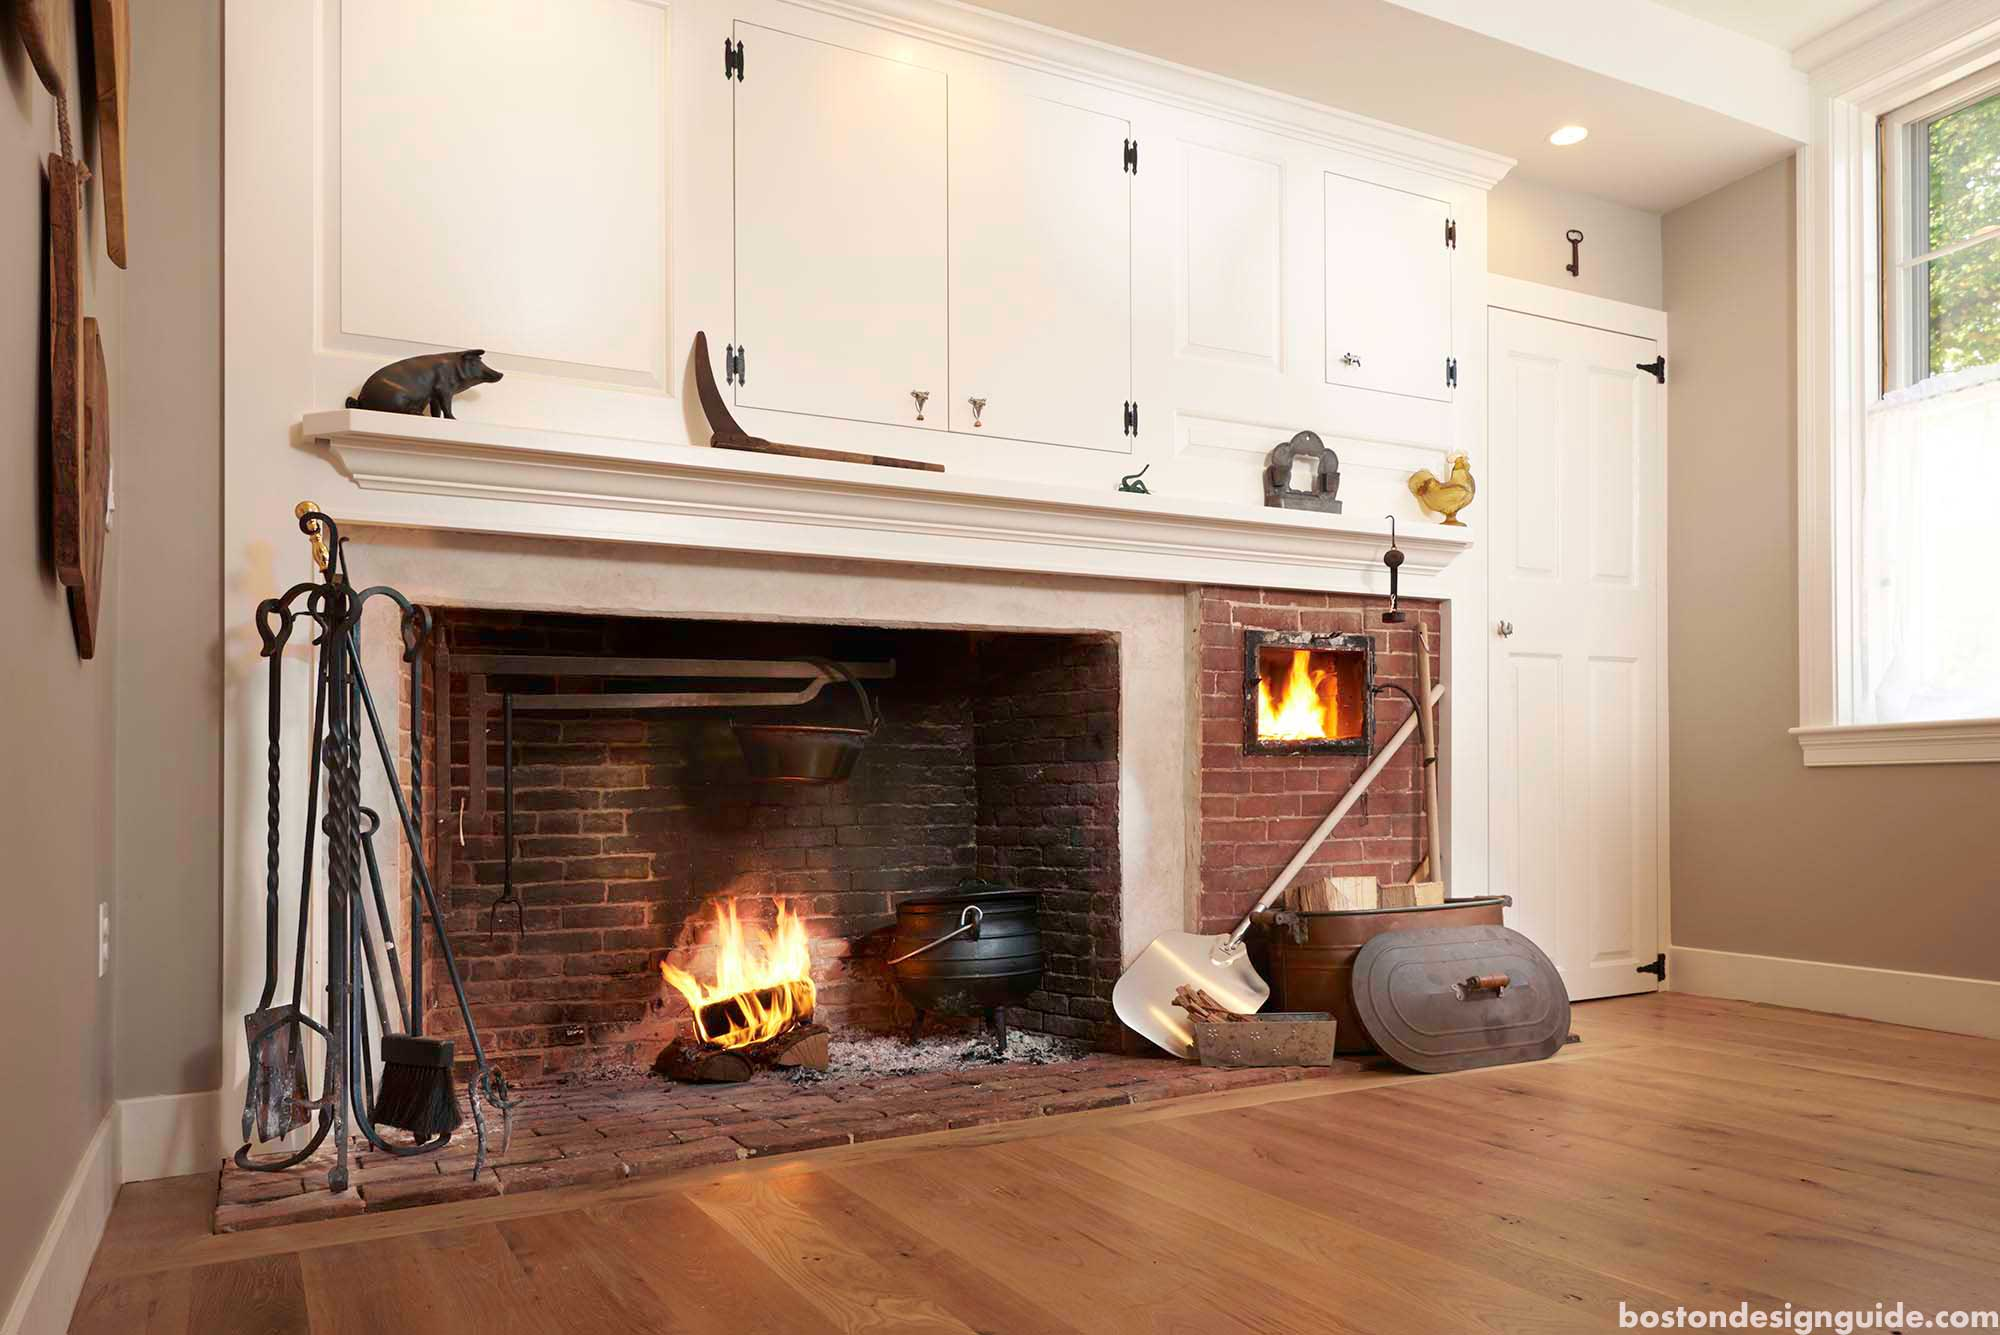 Kitchen fireplace by C2MG Builders